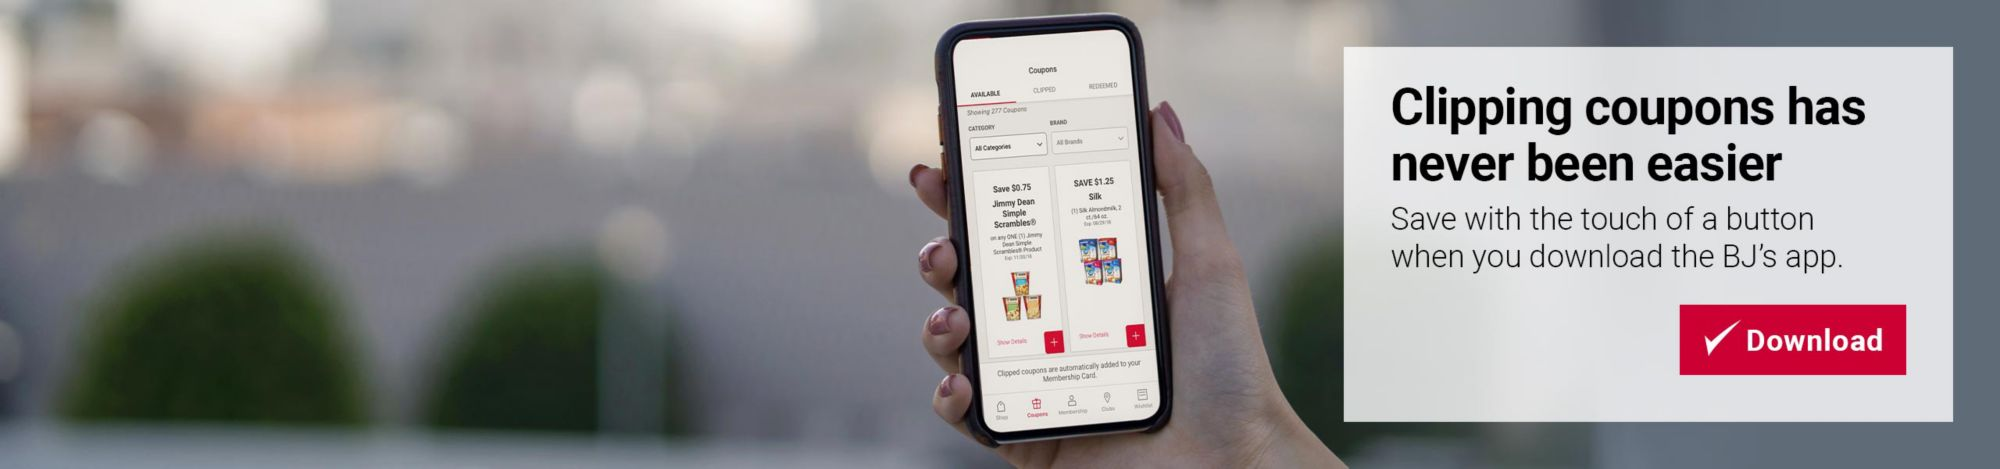 Clipping coupons has never been easier. Save with the touch of a button when you download the BJ's app. Click here to download.